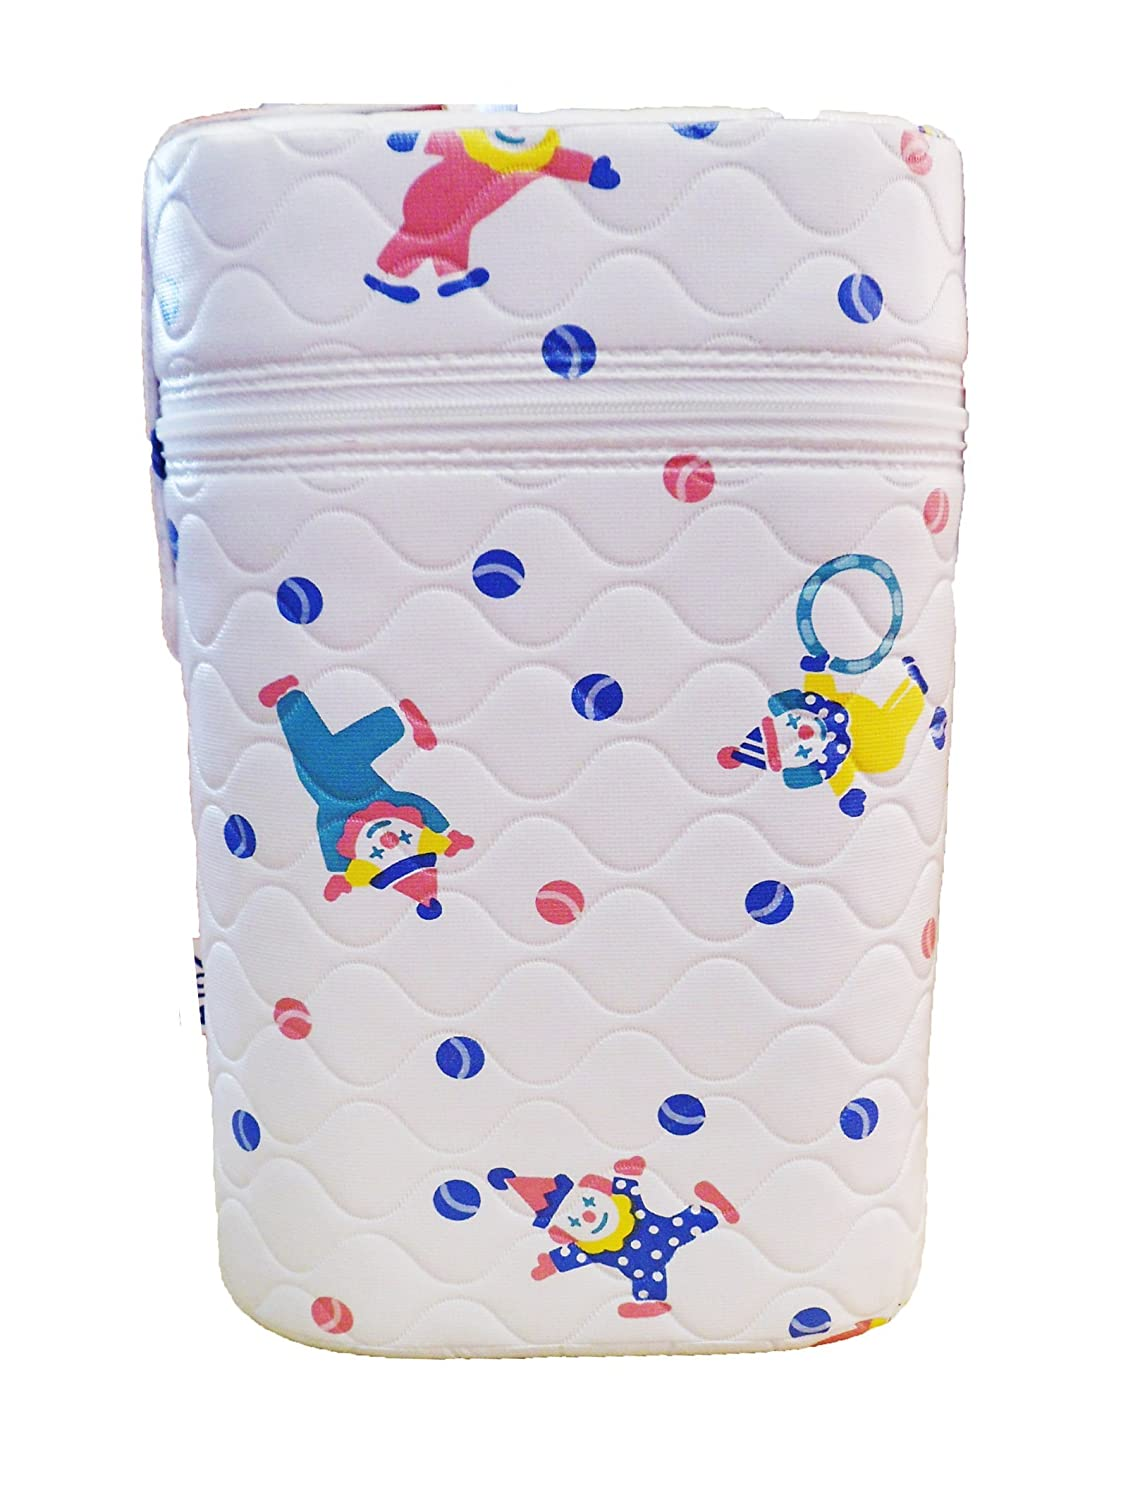 Insulated Bottle Holder - Twin/Double Insulator Clowns Design BABY best BUYS Print-Boy Clowns